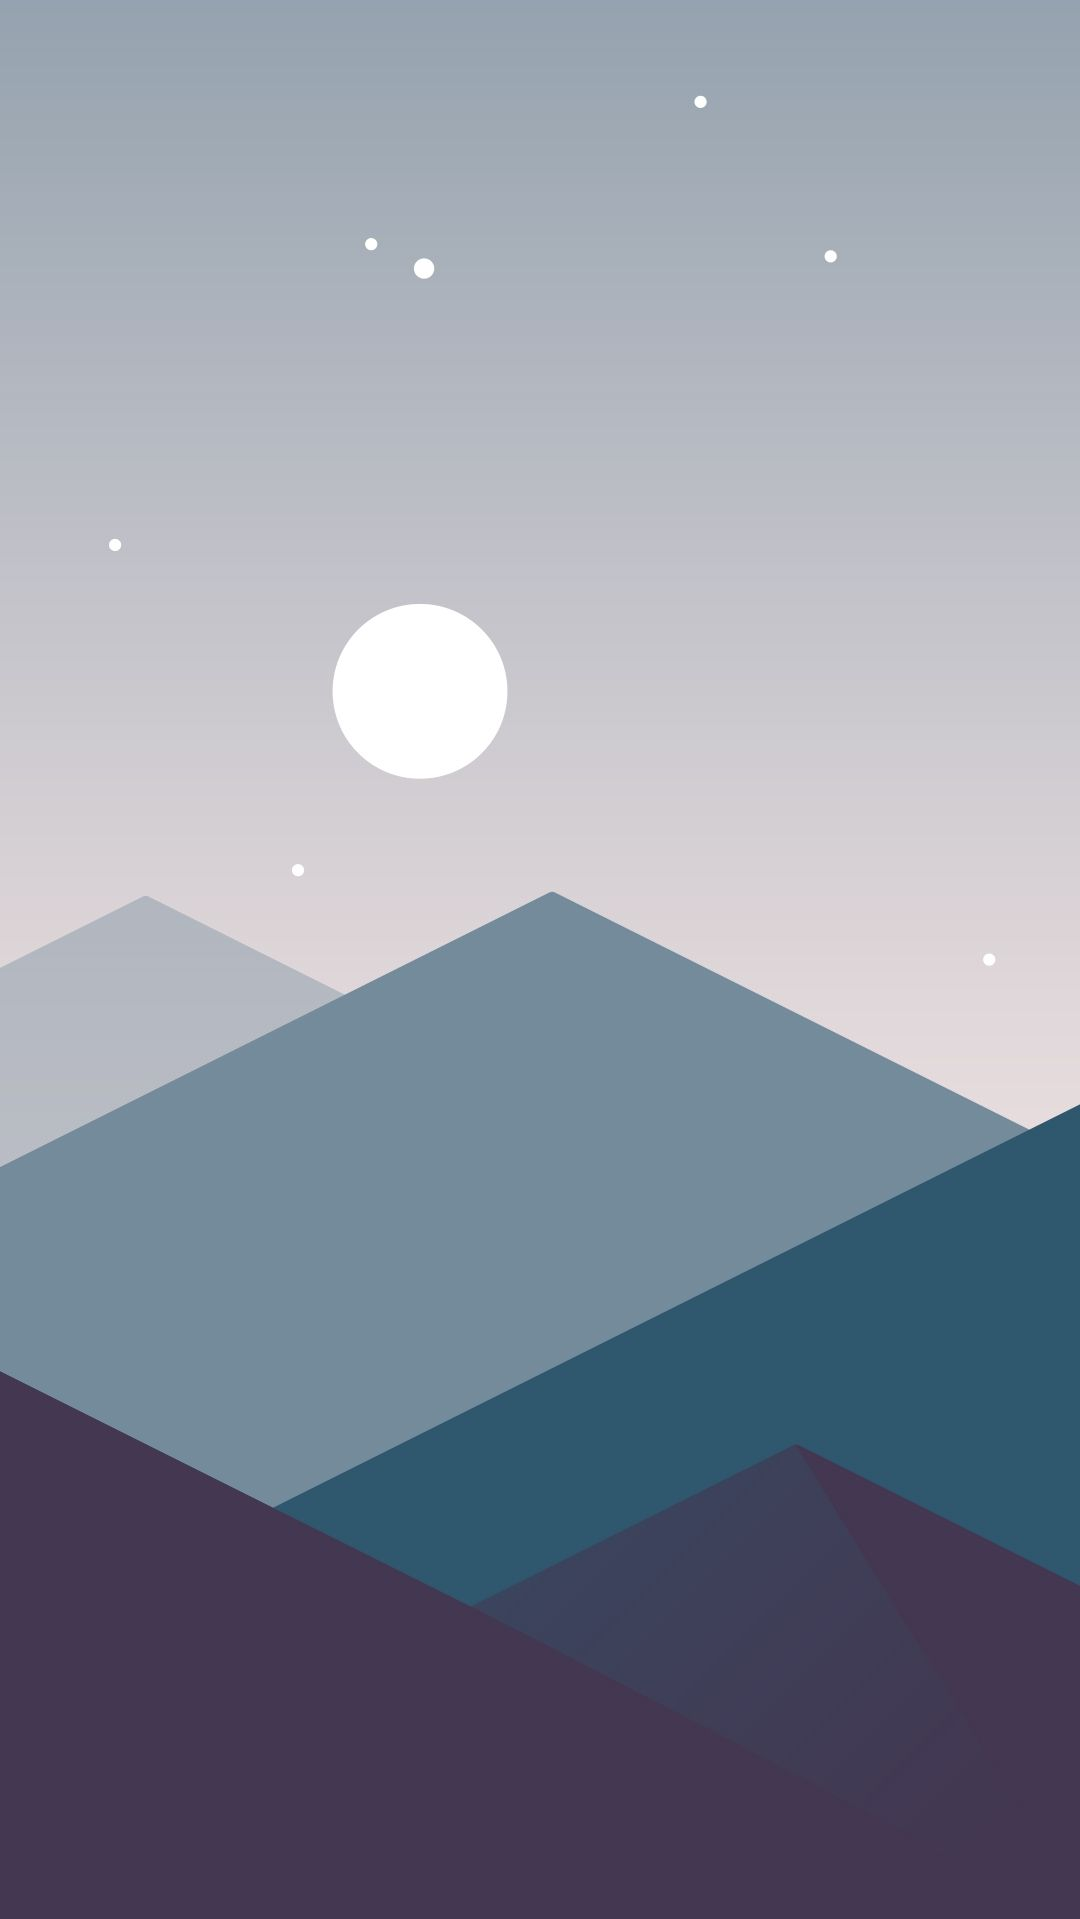 Minimalistic Mountains Night Moon iPhone Wallpaper My in 2019 1080x1919